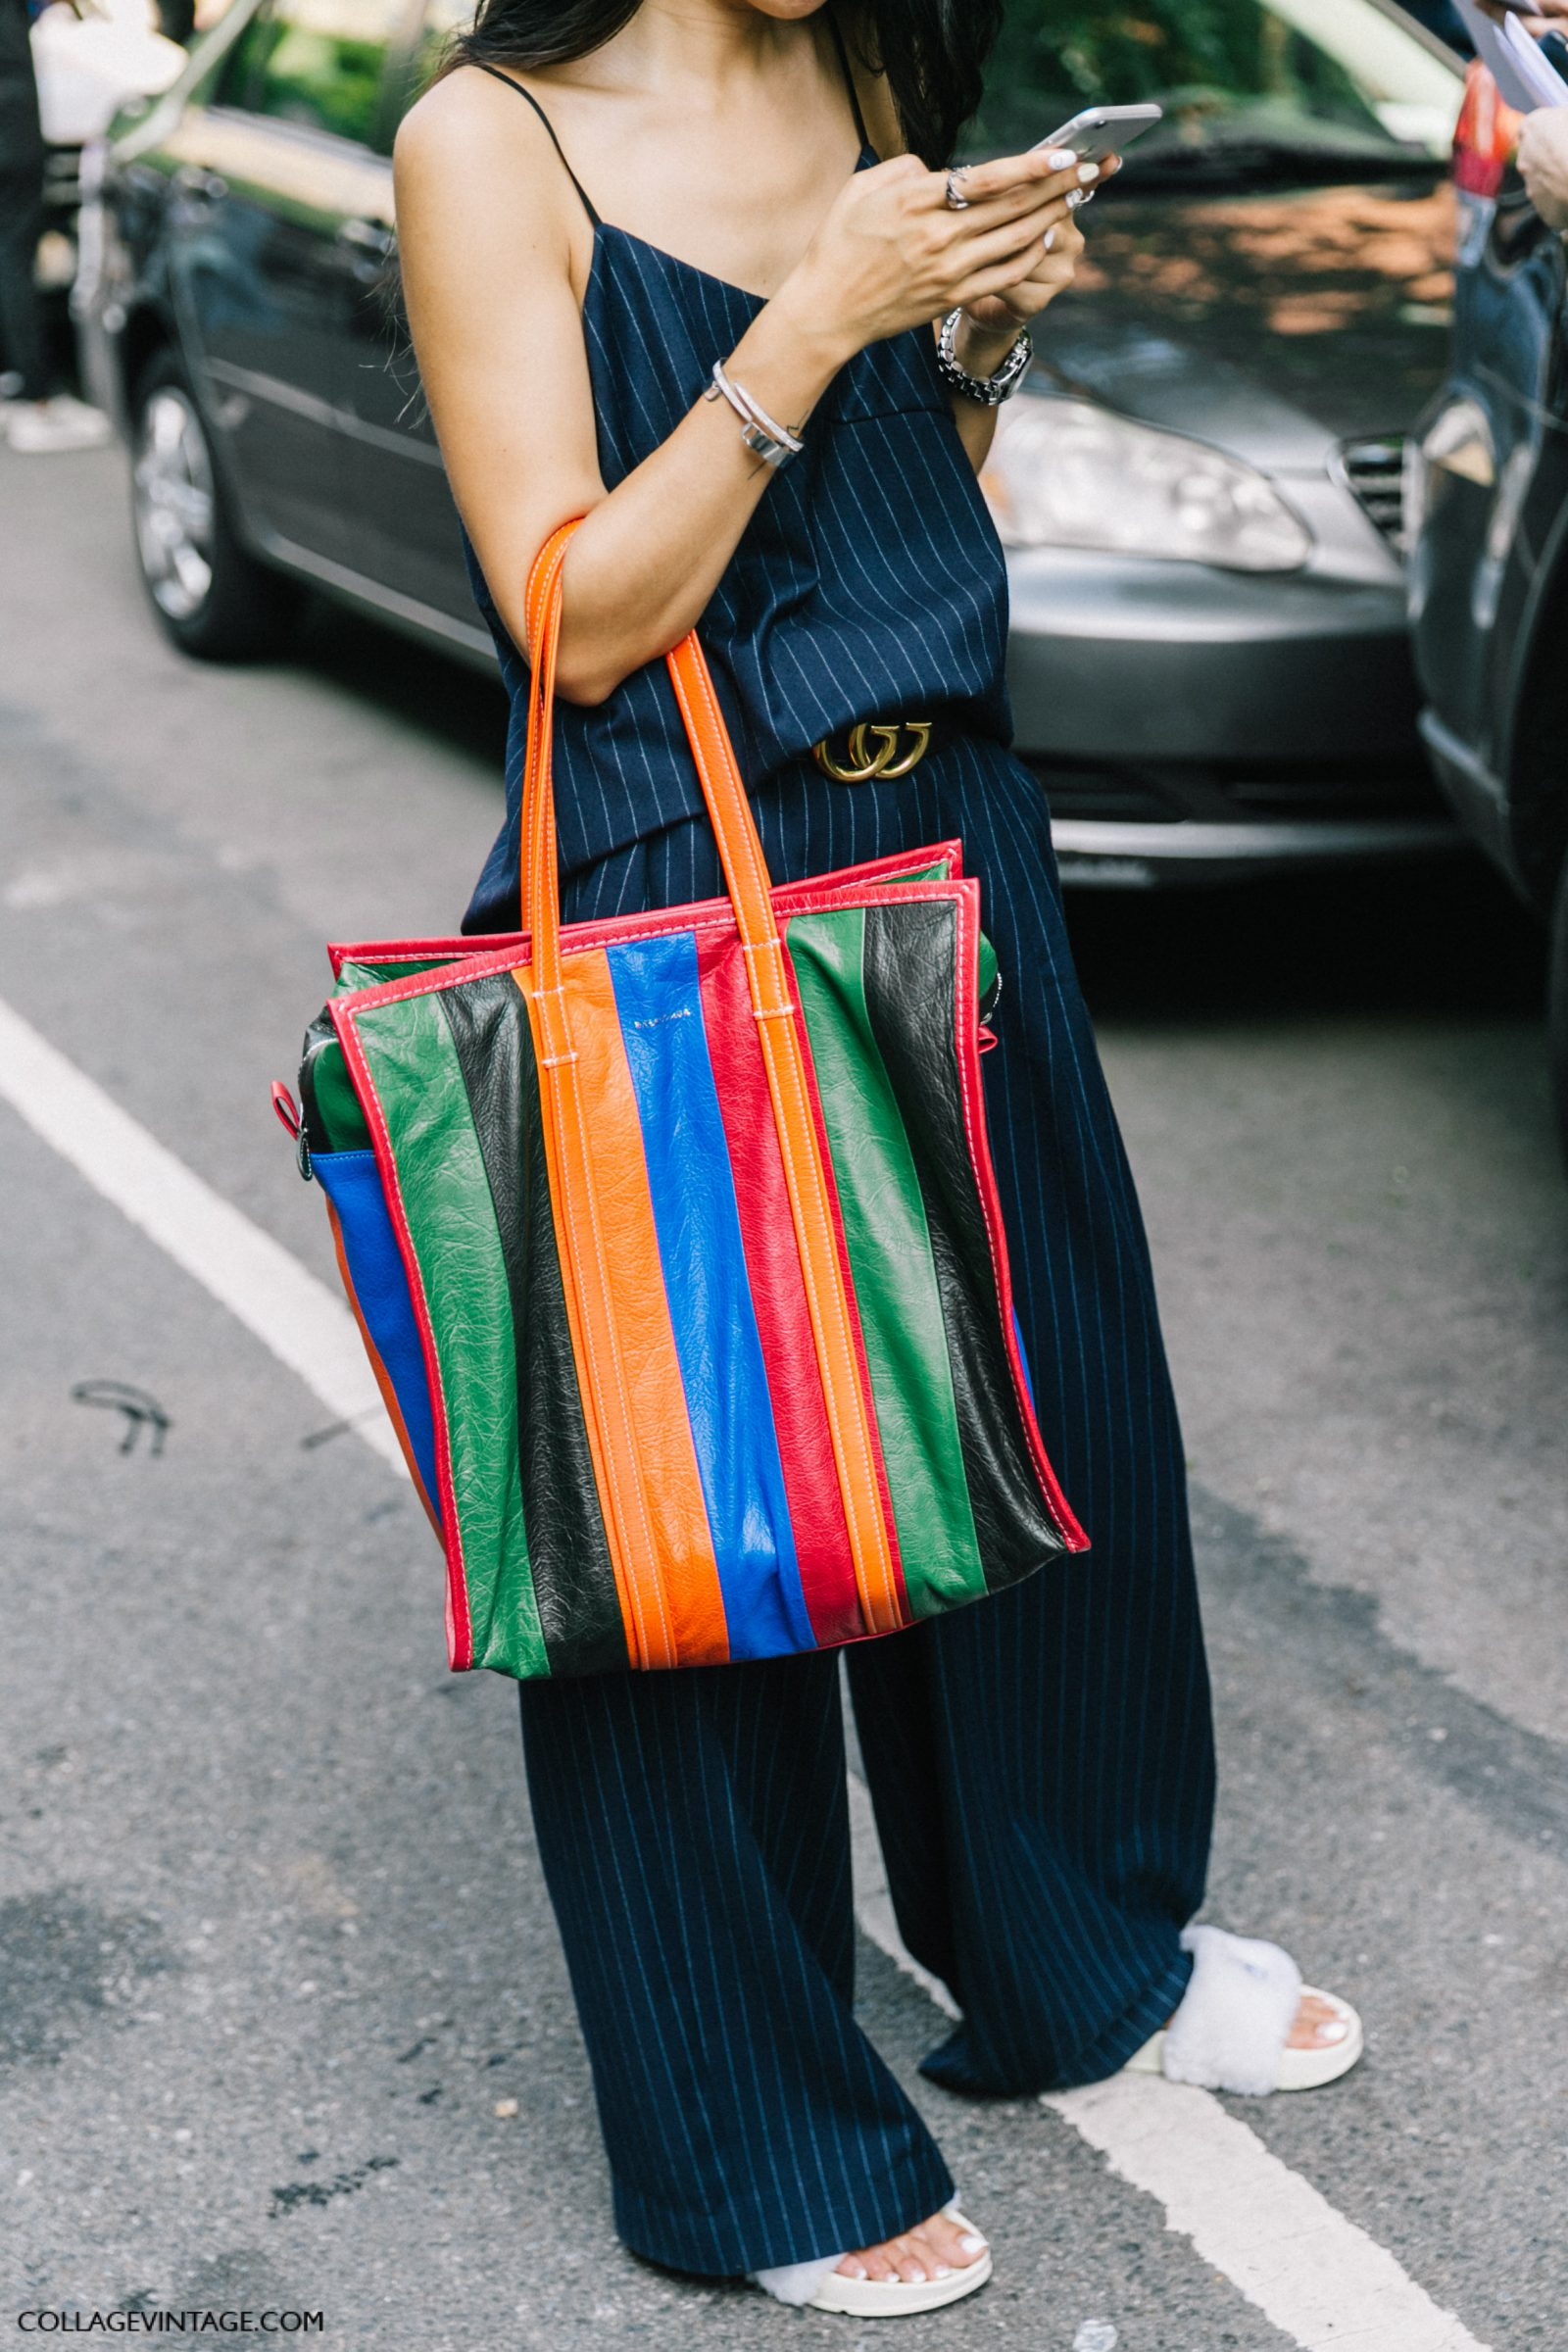 nyfw-new_york_fashion_week_ss17-street_style-outfits-collage_vintage-48